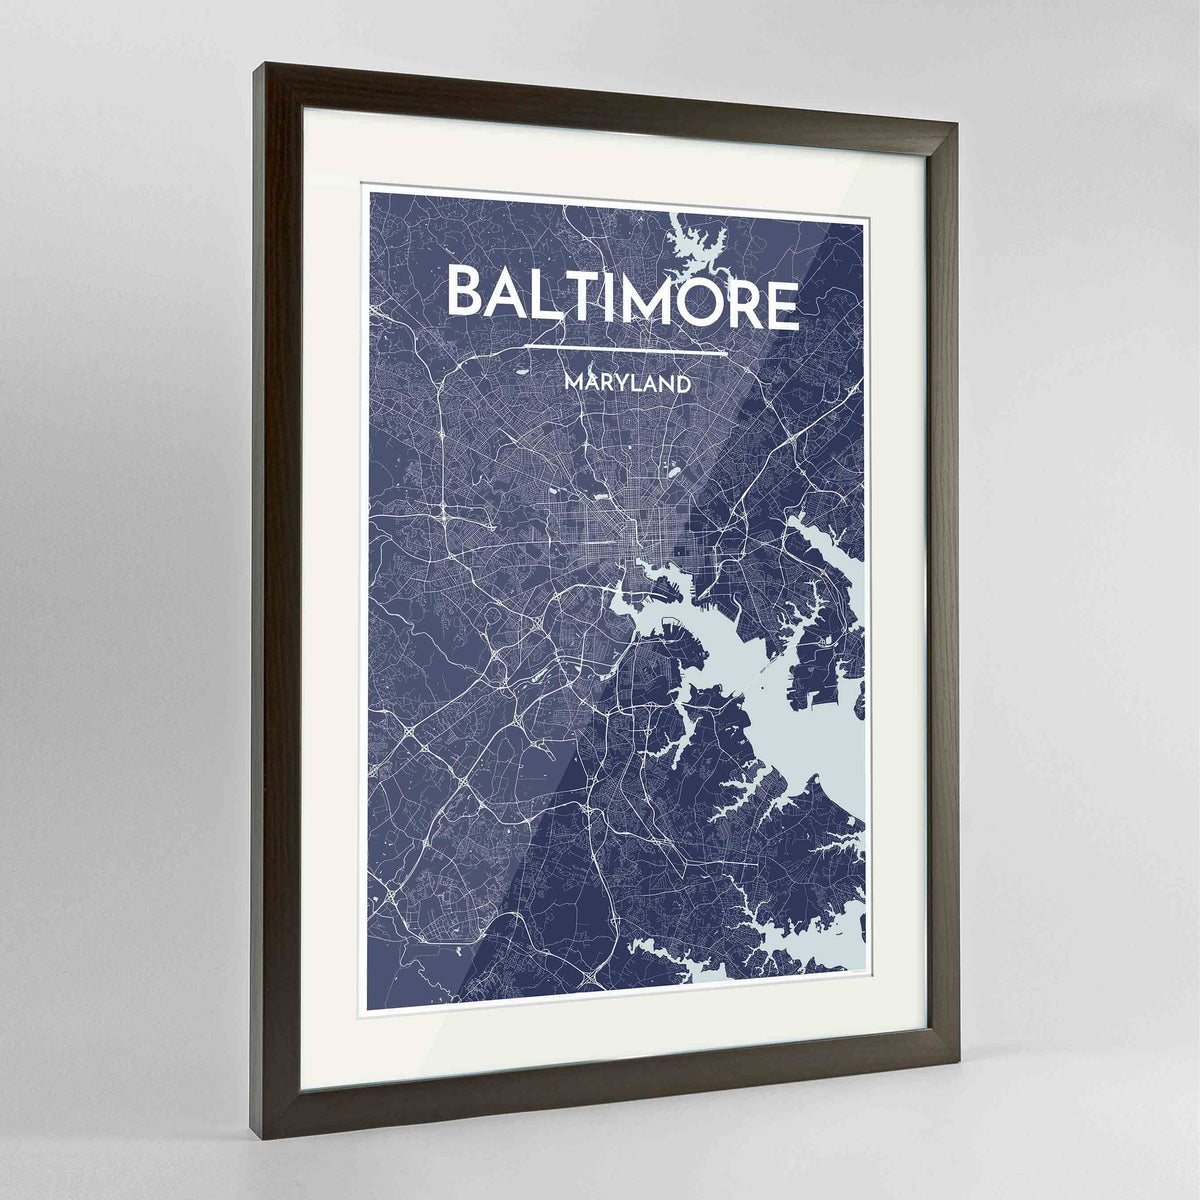 "Framed Baltimore Map Art Print 24x36"" Contemporary Walnut frame Point Two Design Group"